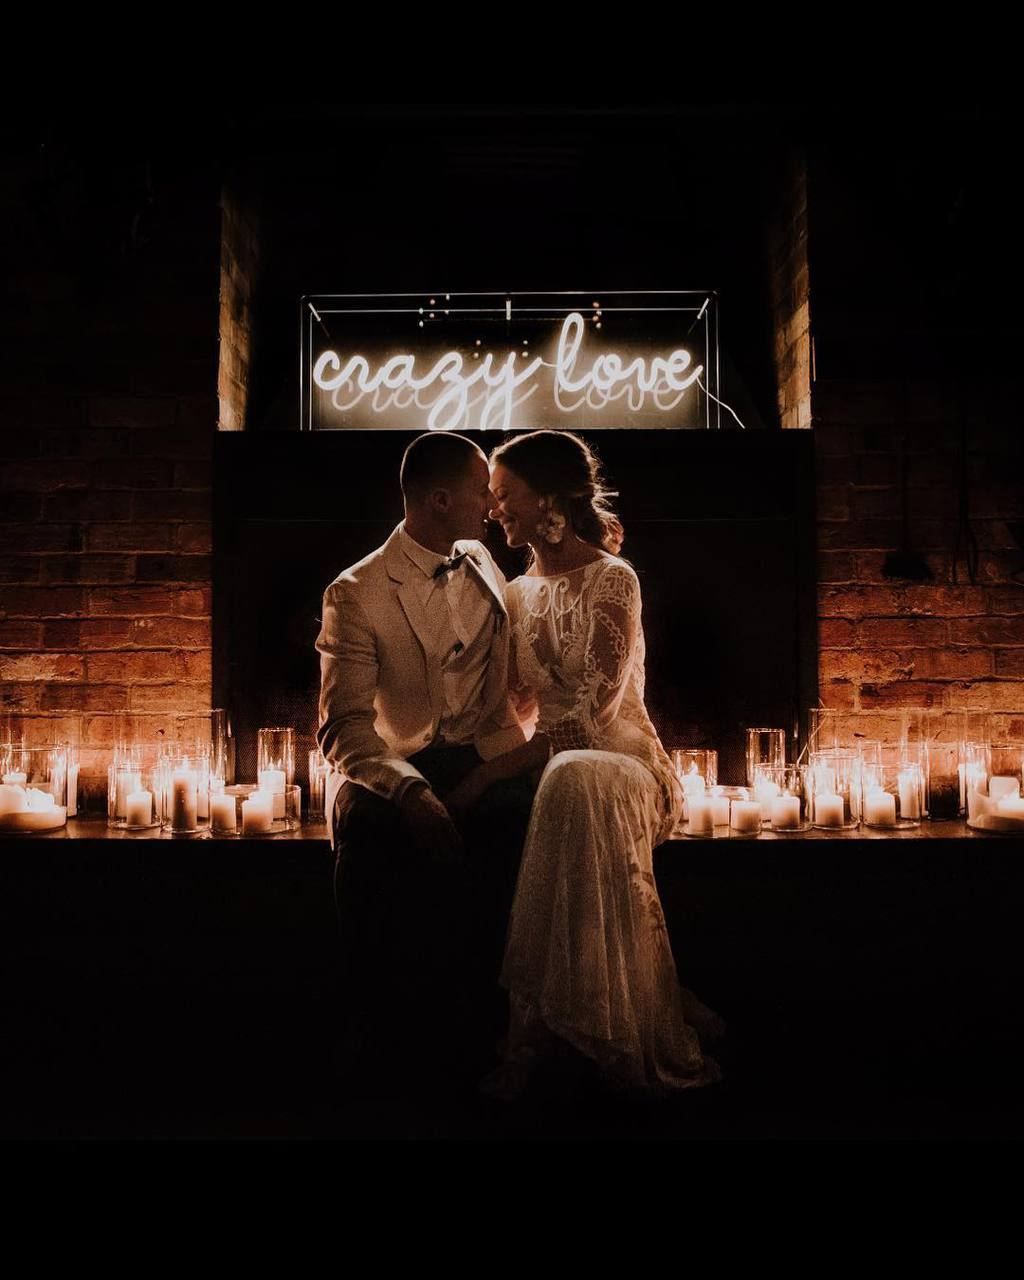 Crazy Love Neon Sign by Little Pineapple Neon | Photography: Tess Follett